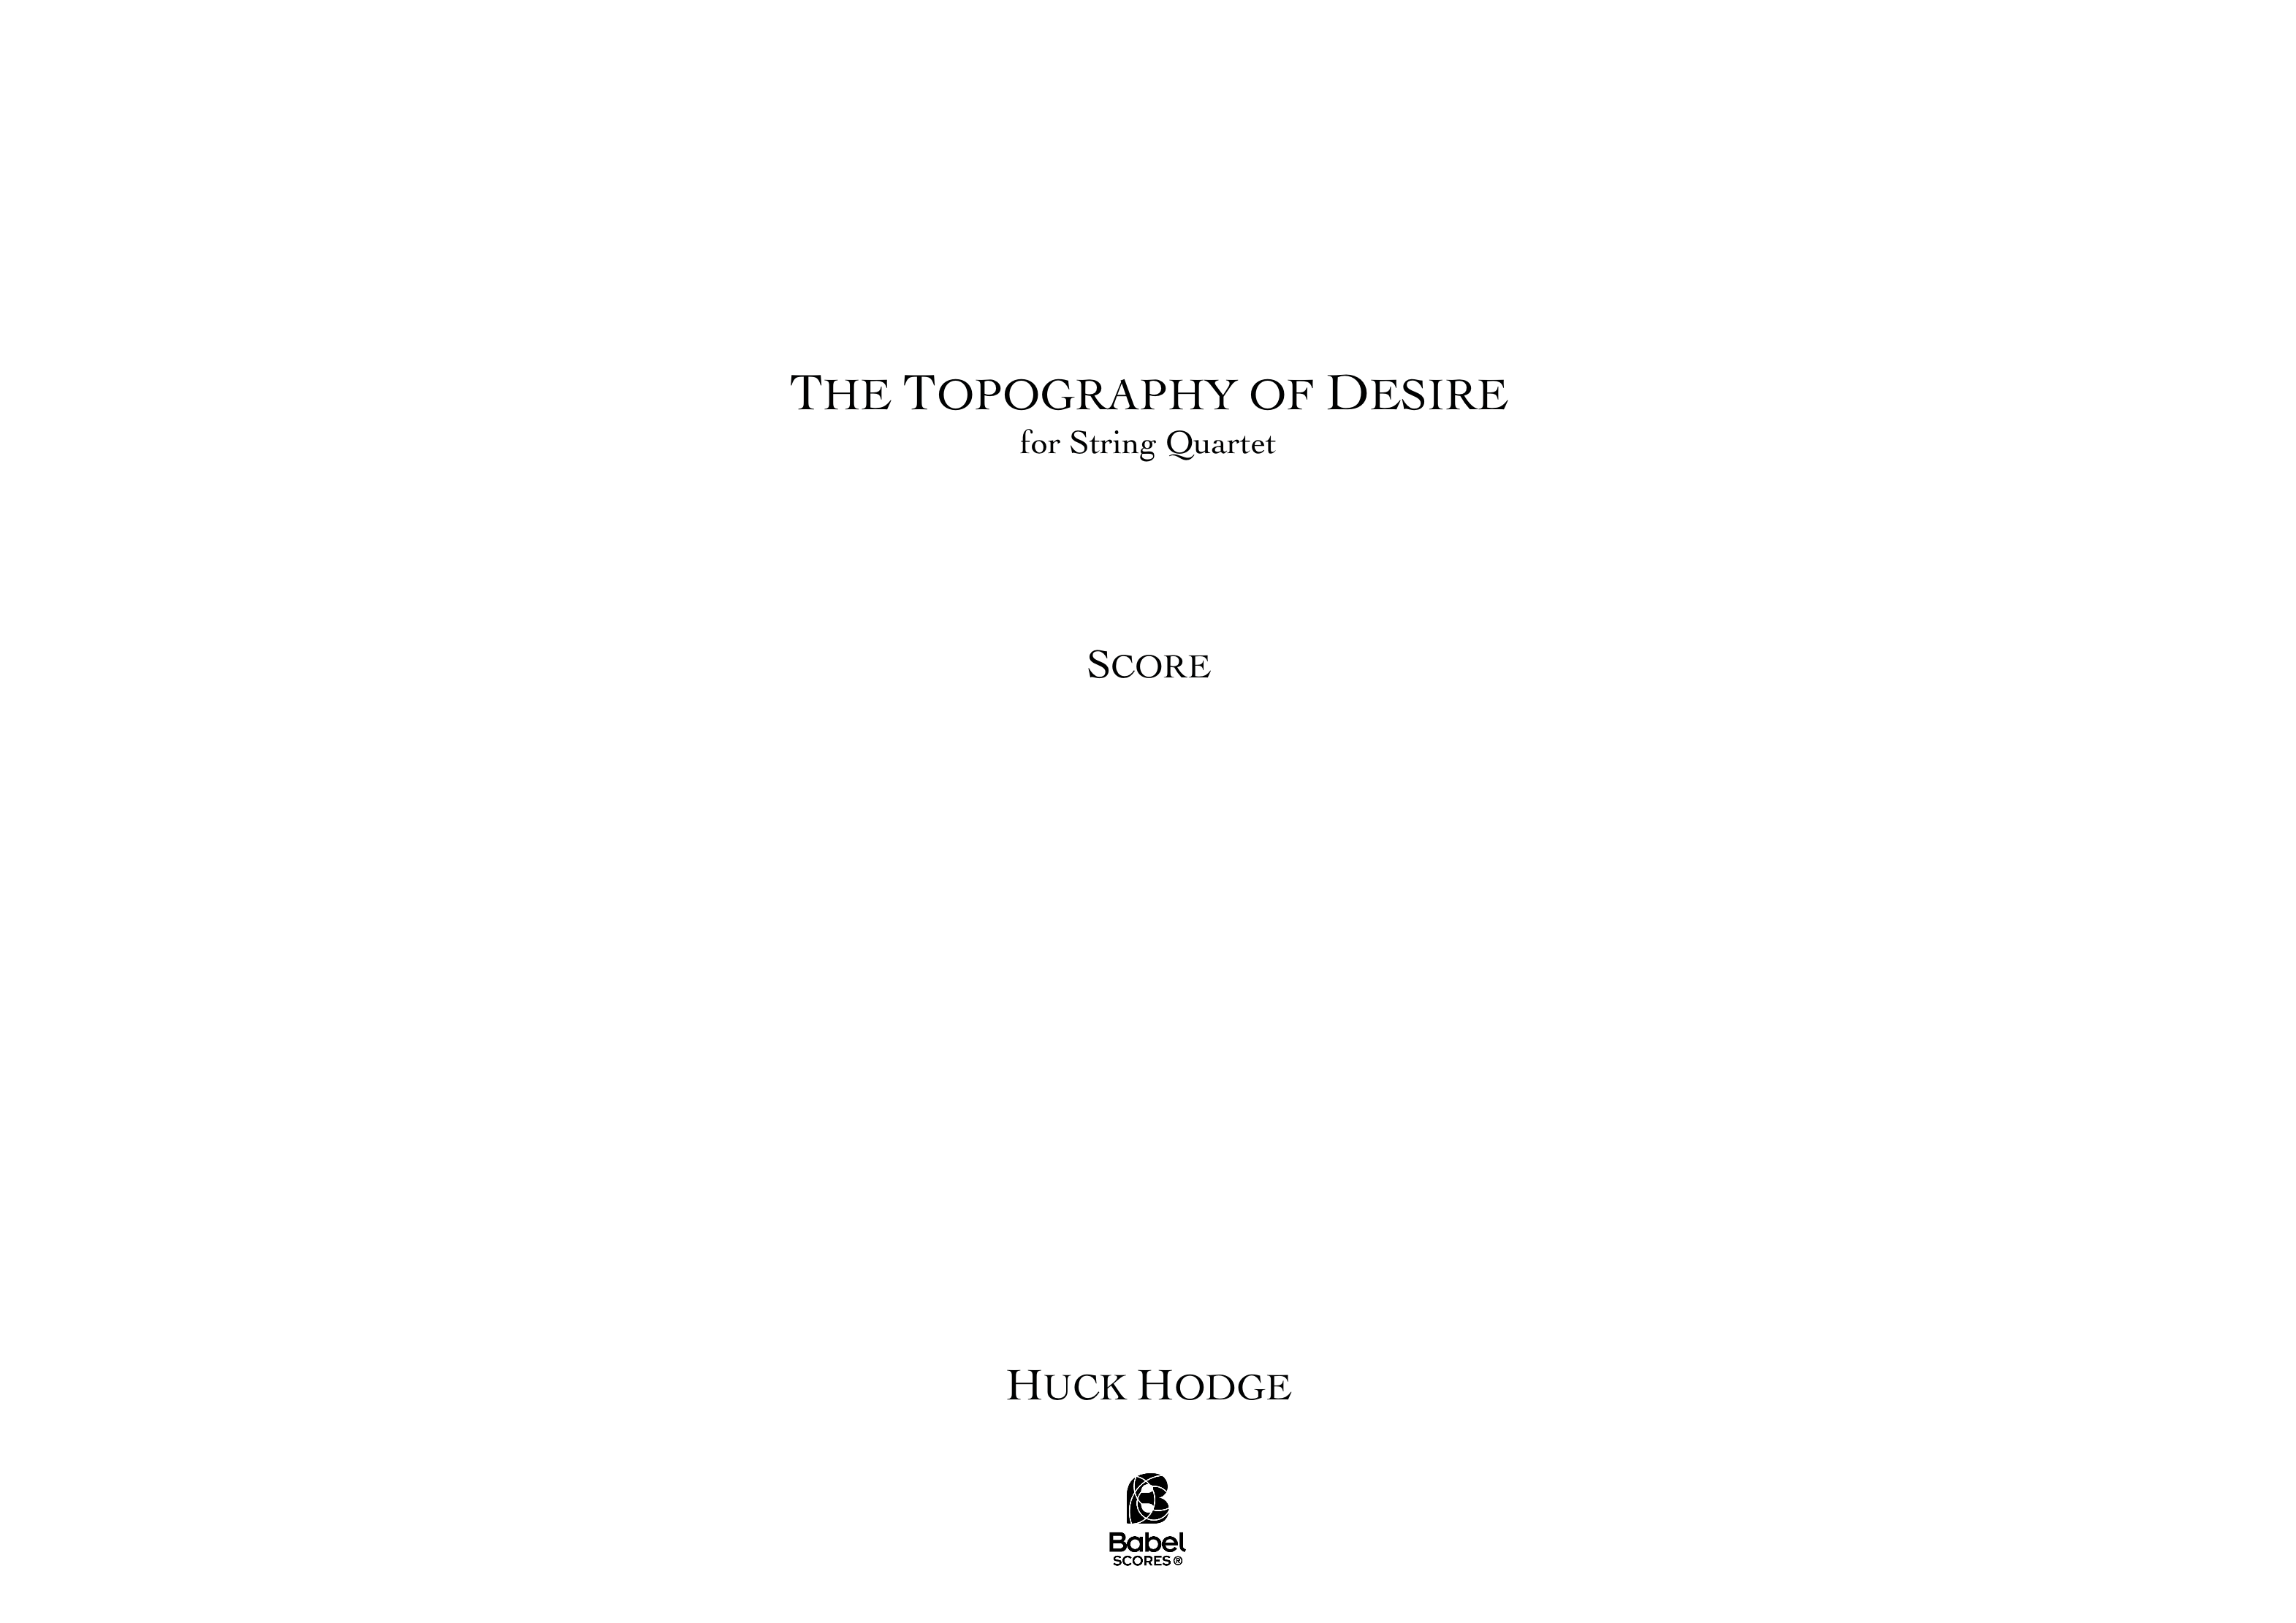 The Topography of Desire A3 z 3 1 594